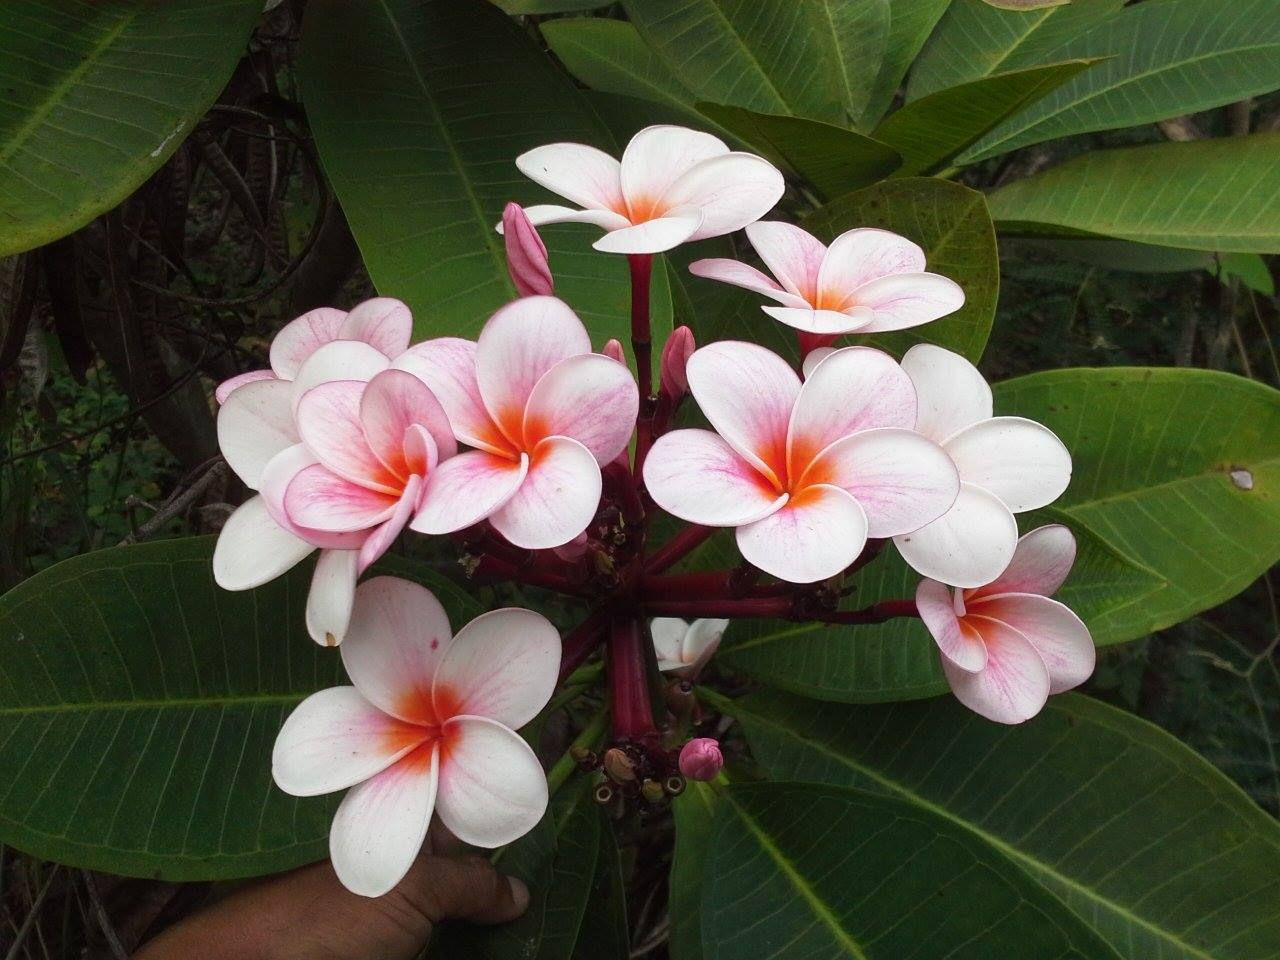 The Plumeria Society Of America Recommends A Potting Mix Designed For Roses If The Soil Still Seems Too Dense Add Some Perlite Plumeria Frangipani Flower Lei